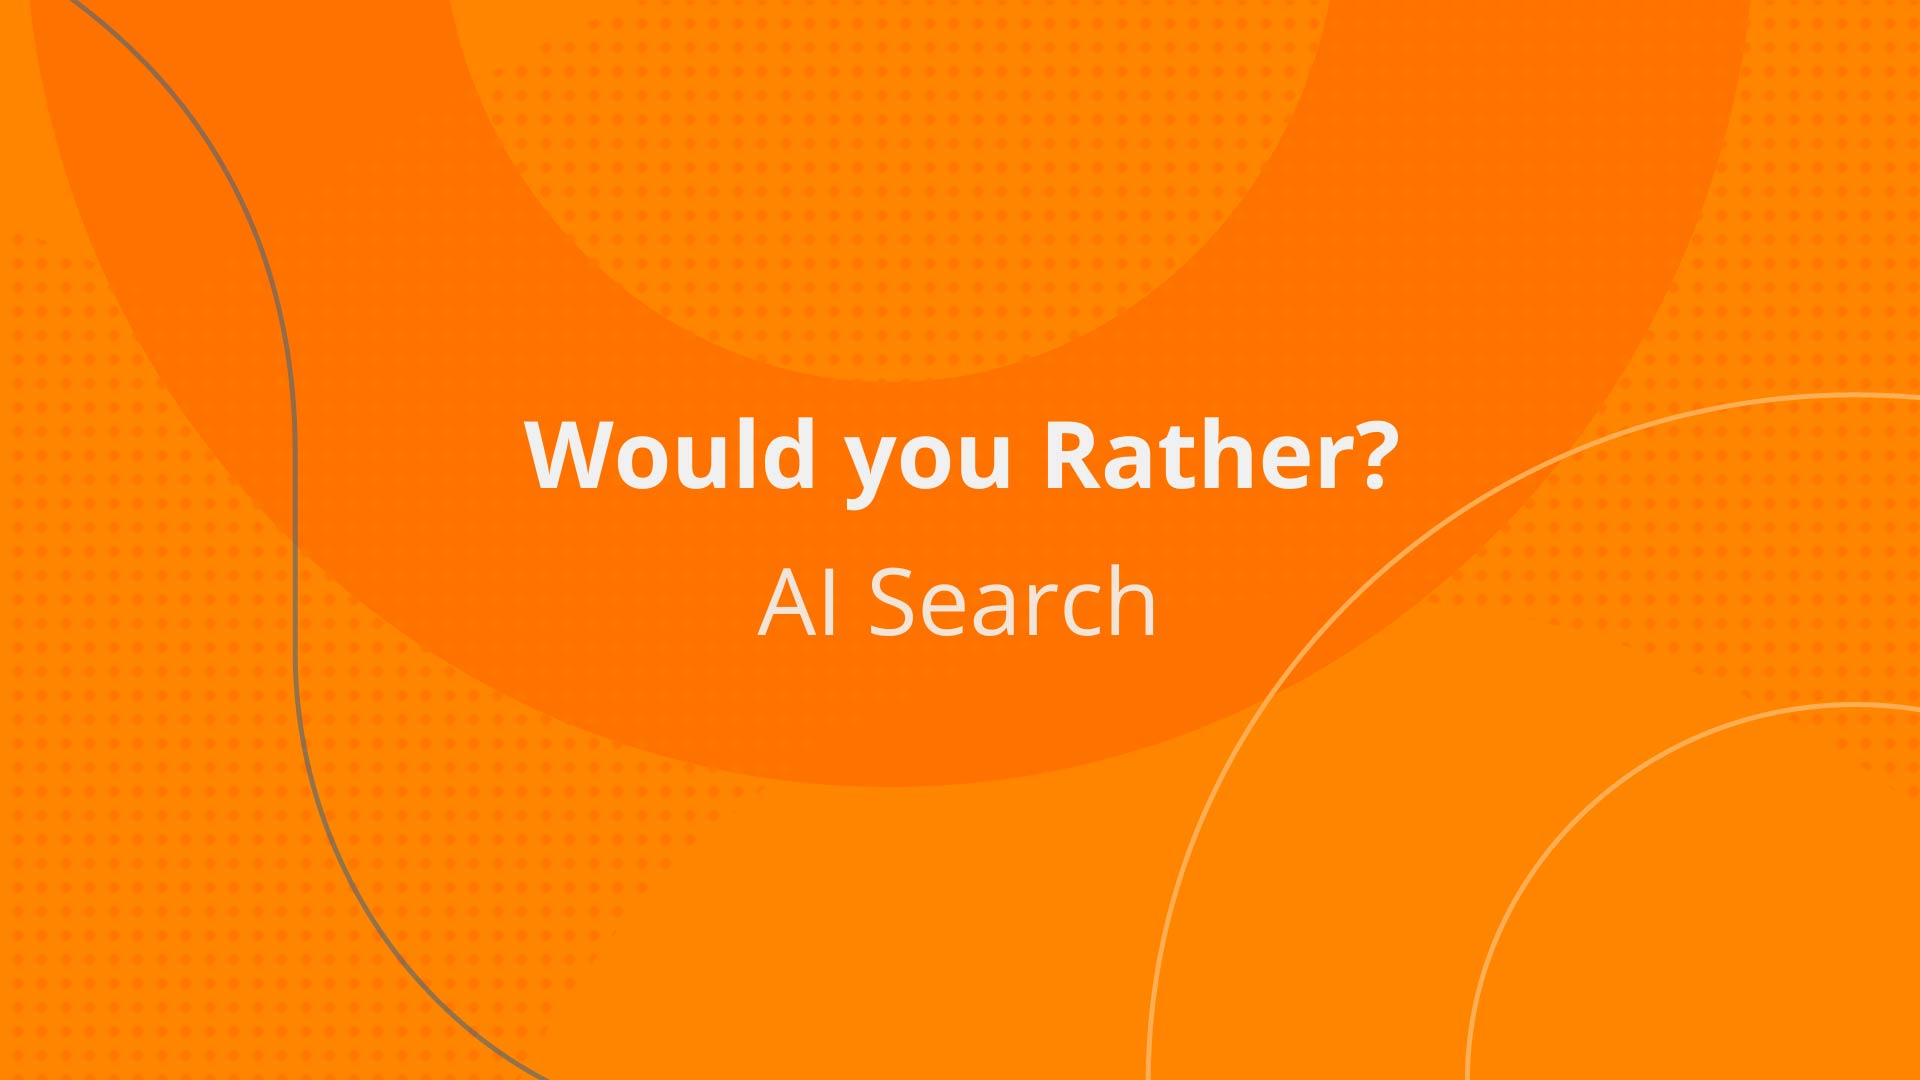 Would you Rather: AI Search